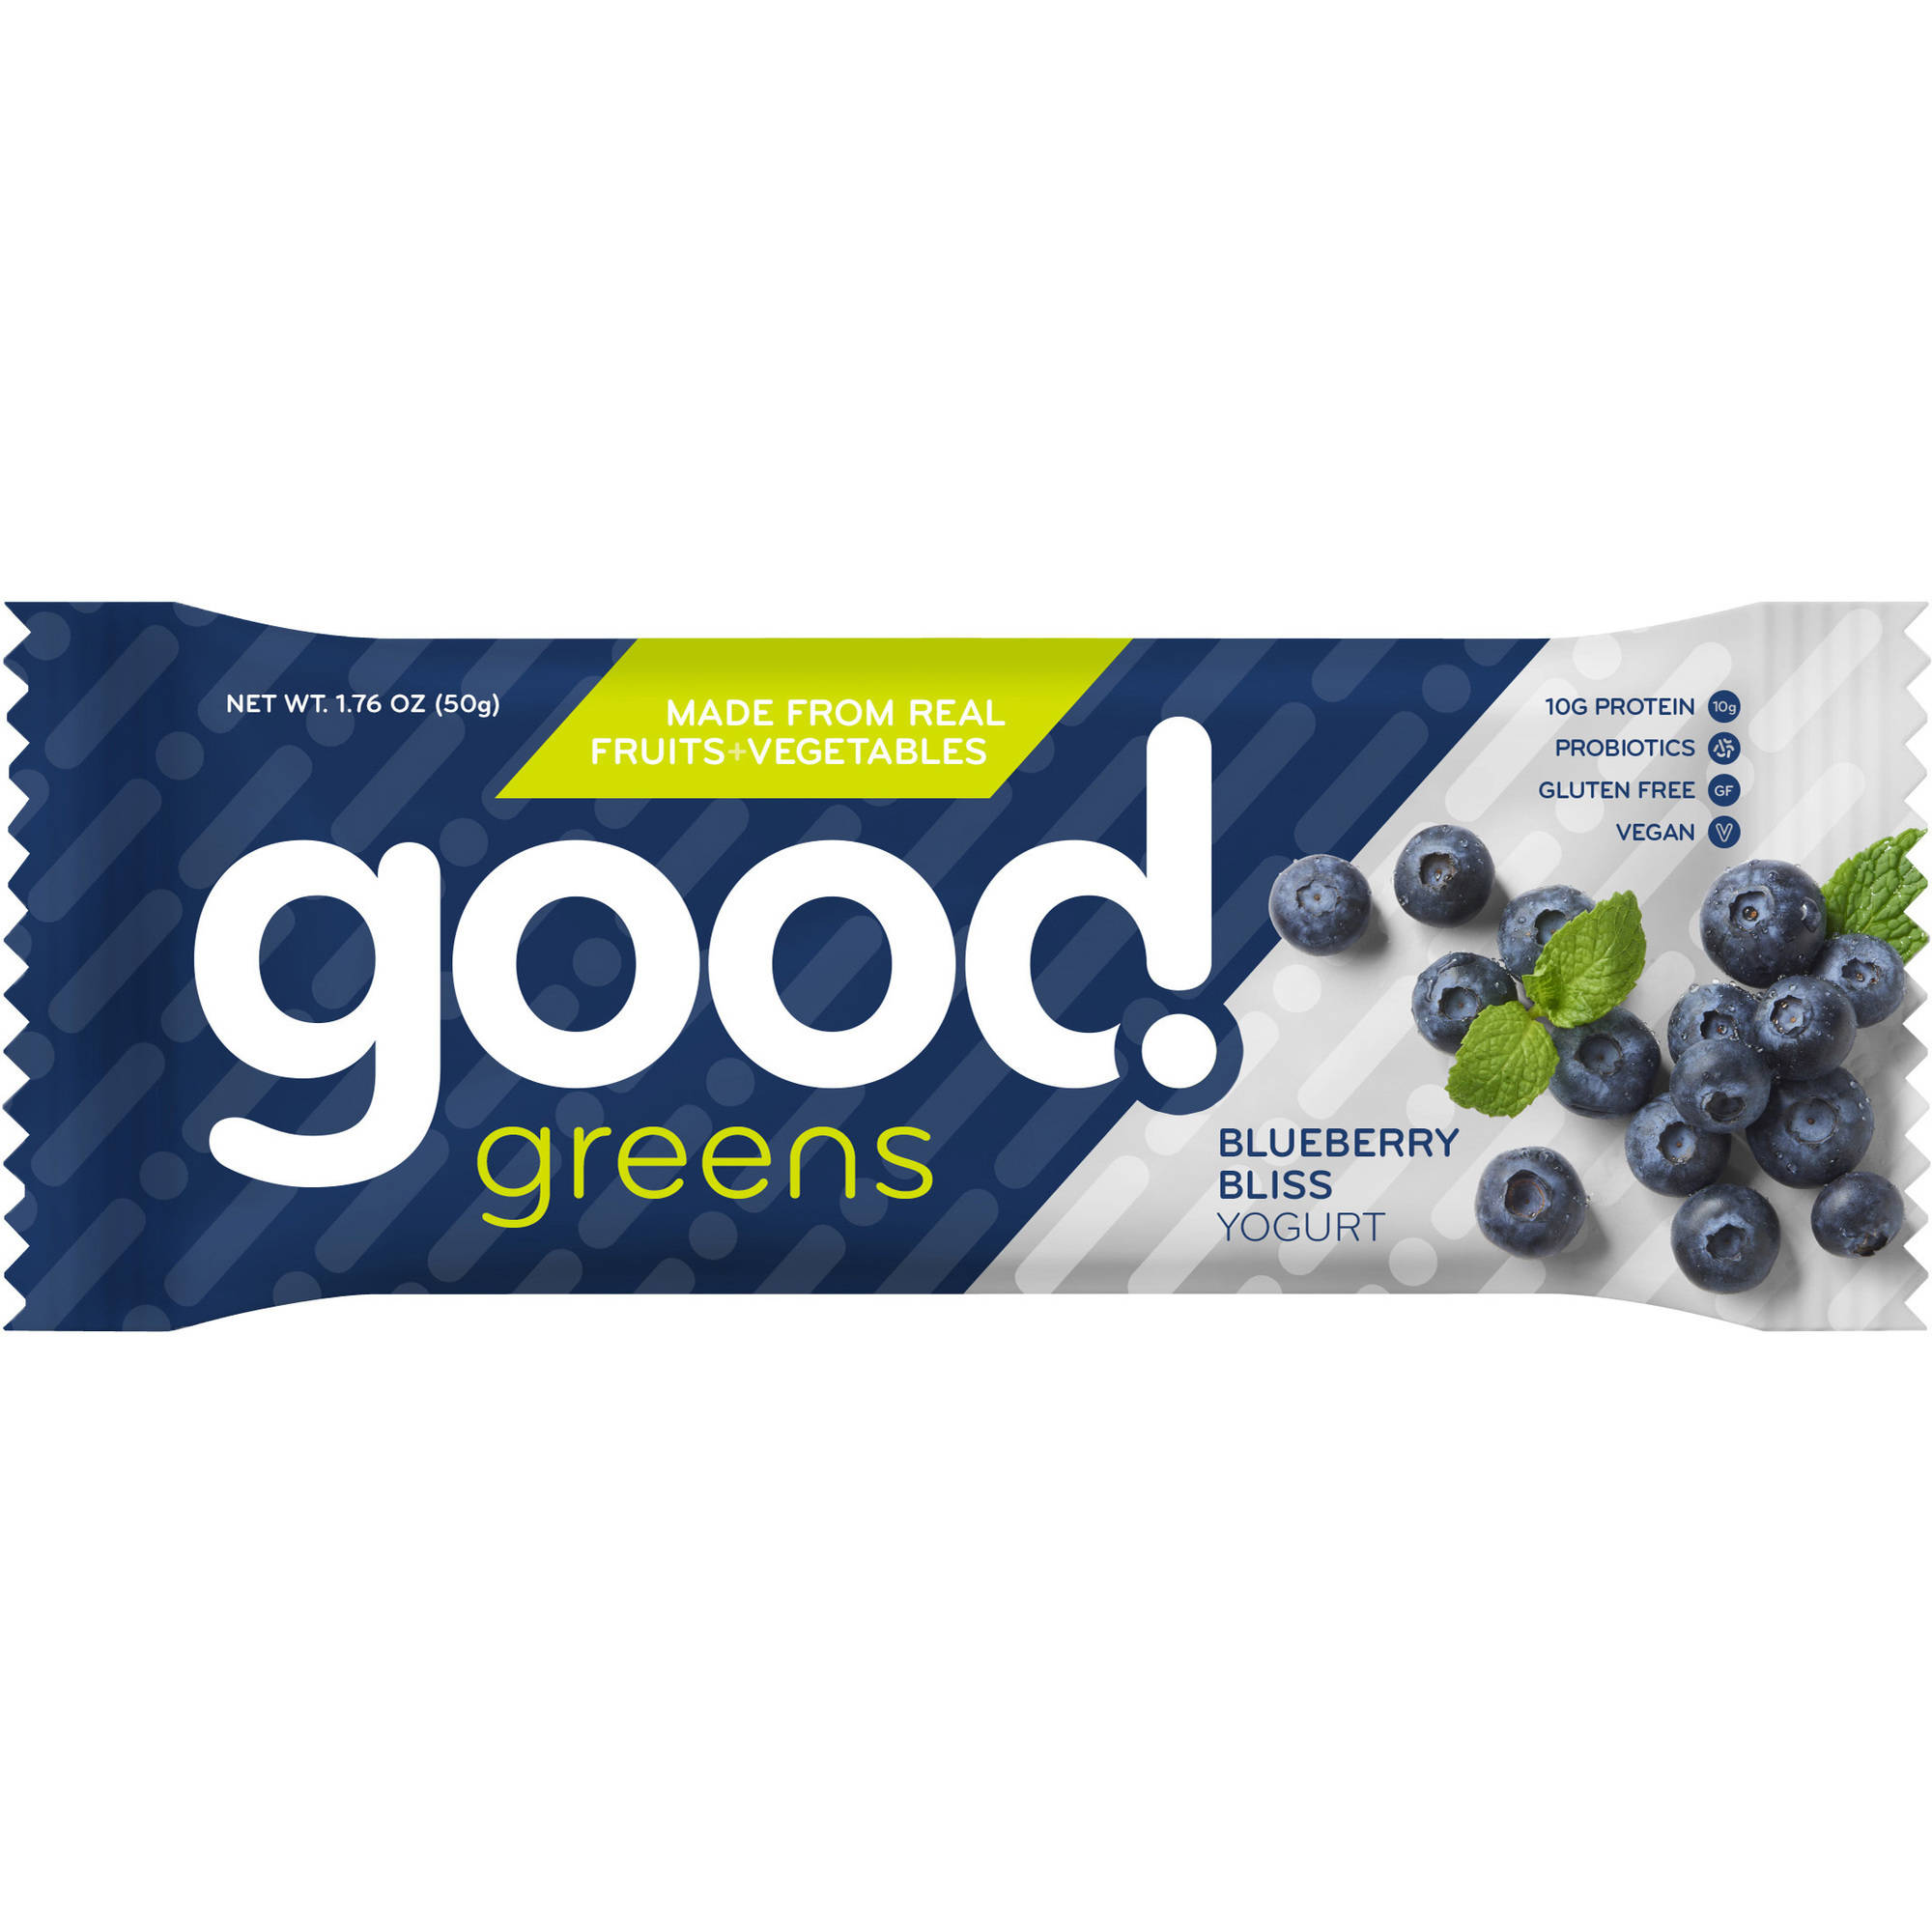 Good Greens Blueberry Bliss Yogurt Nutrition Bars, 1.76 oz, 12 count